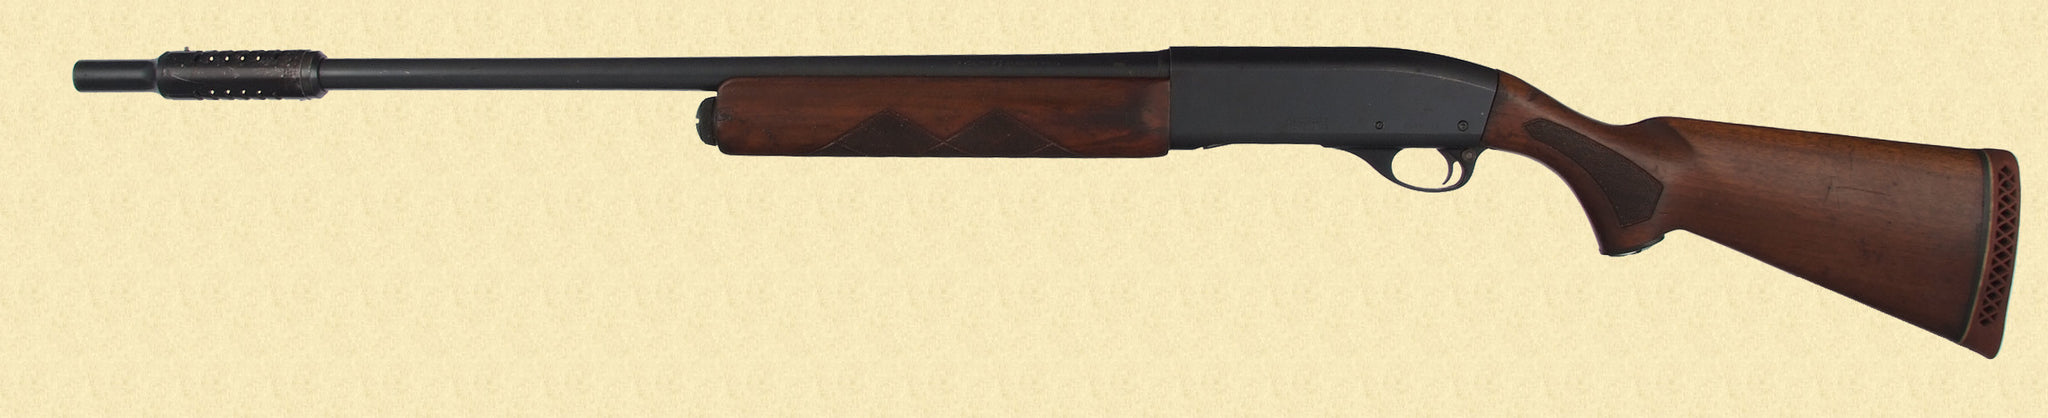 REMINGTON SPORTSMAN 48